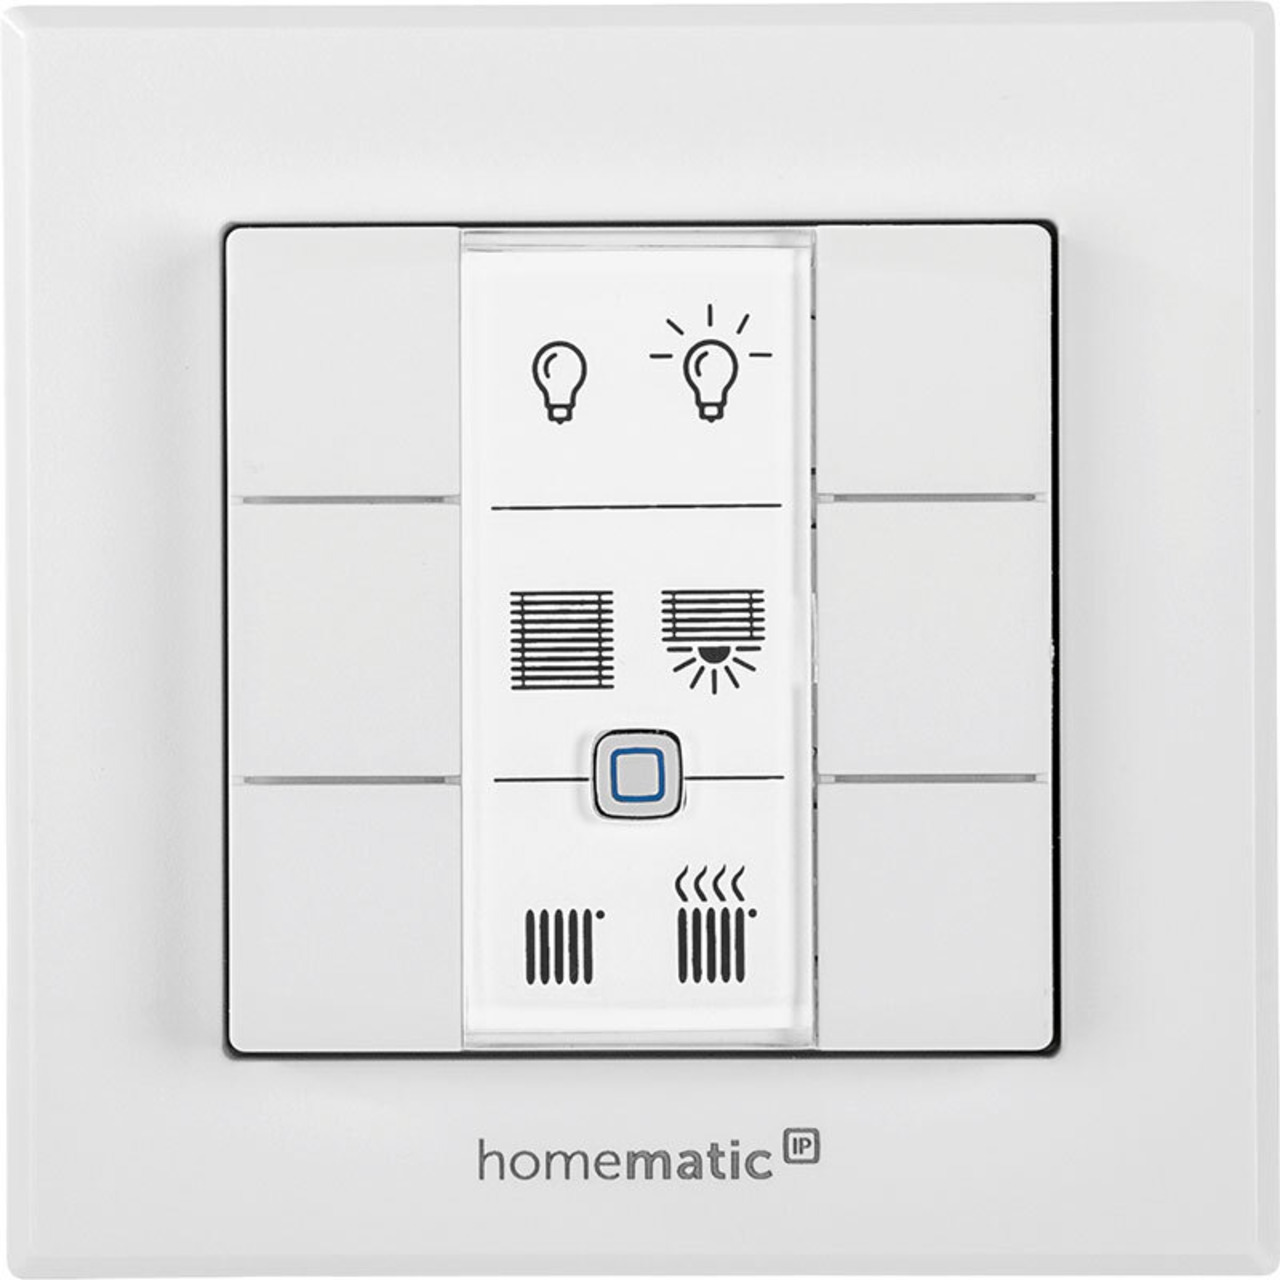 ELV Homematic IP ARR-Bausatz Wandtaster 6-fach HmIP-WRC6- für Smart Home - Hausautomation